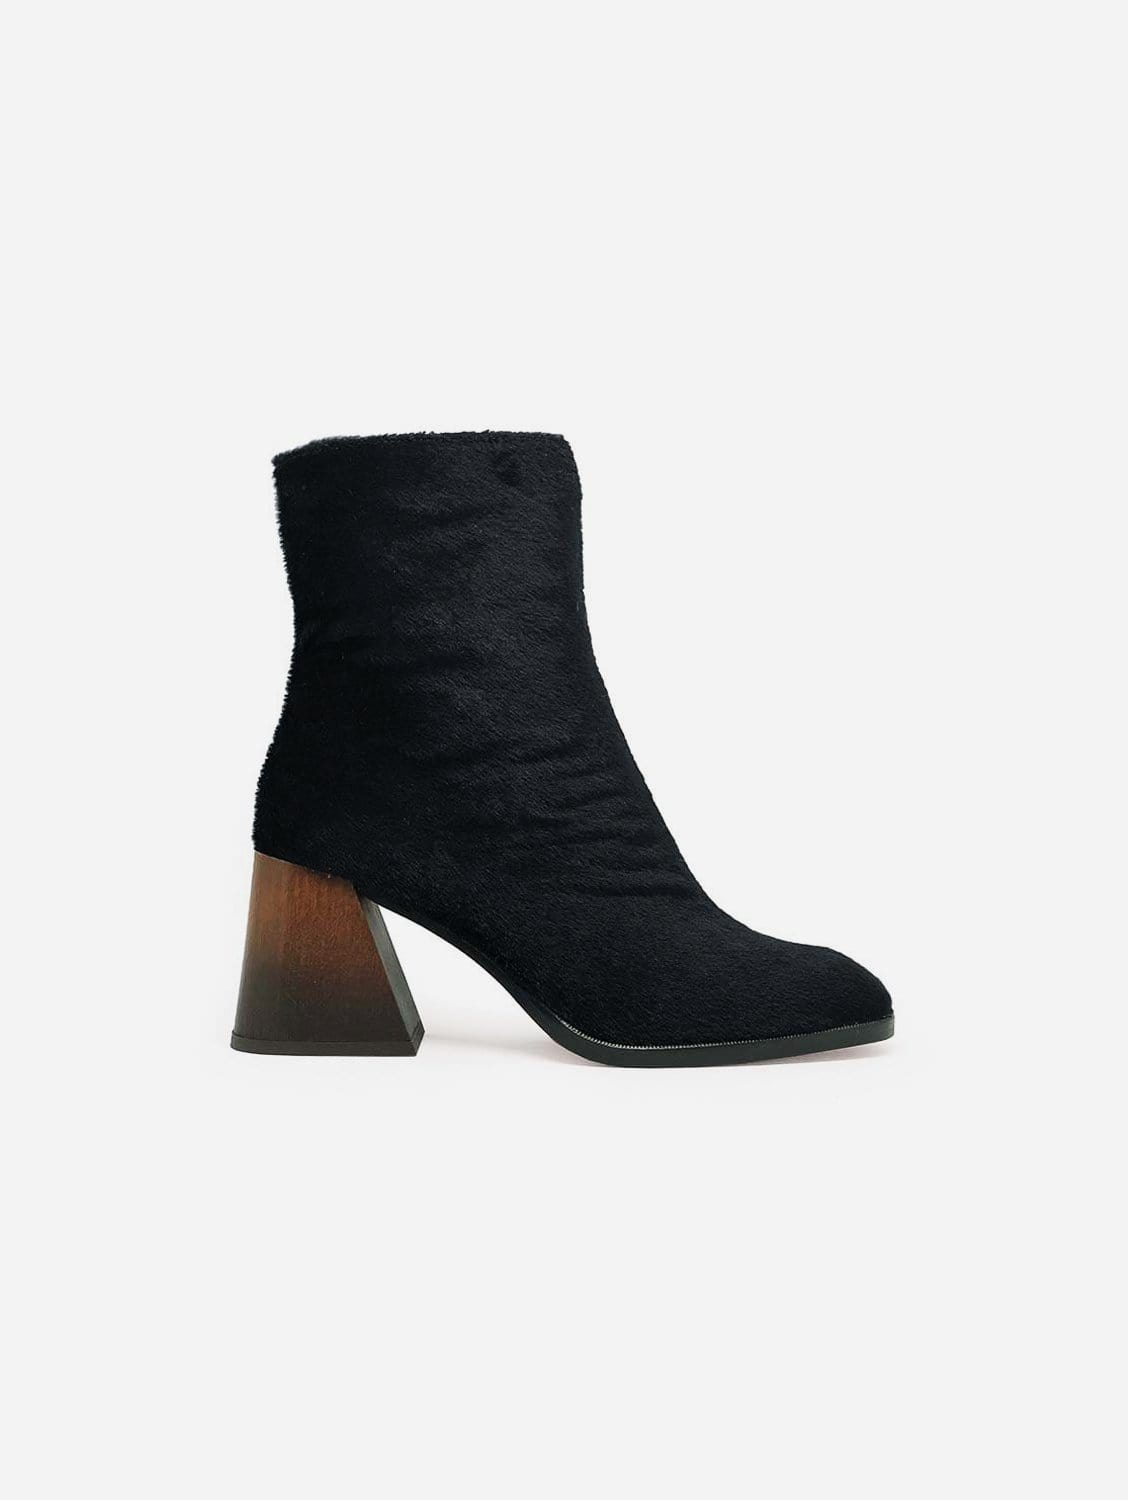 Georgina Recycled Polyester Vegan Ankle Boot   Black Pony Hair Effect